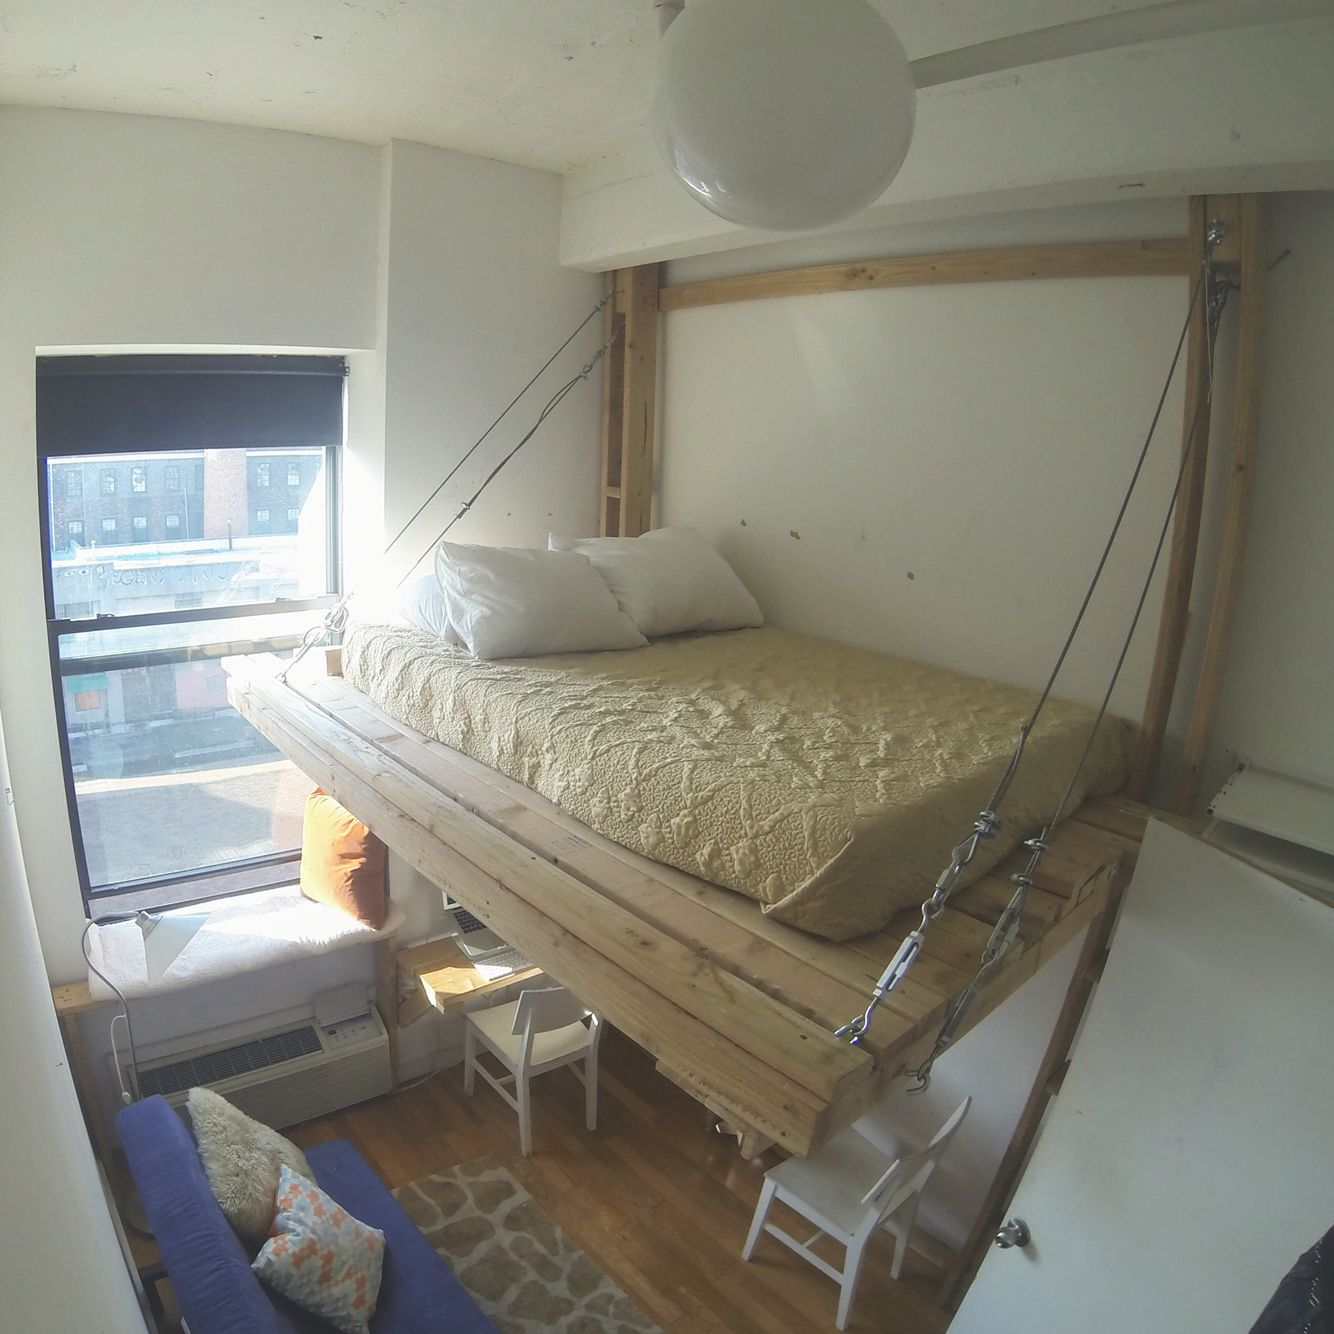 Hanging bed / loft bed / suspended bed / floating bed